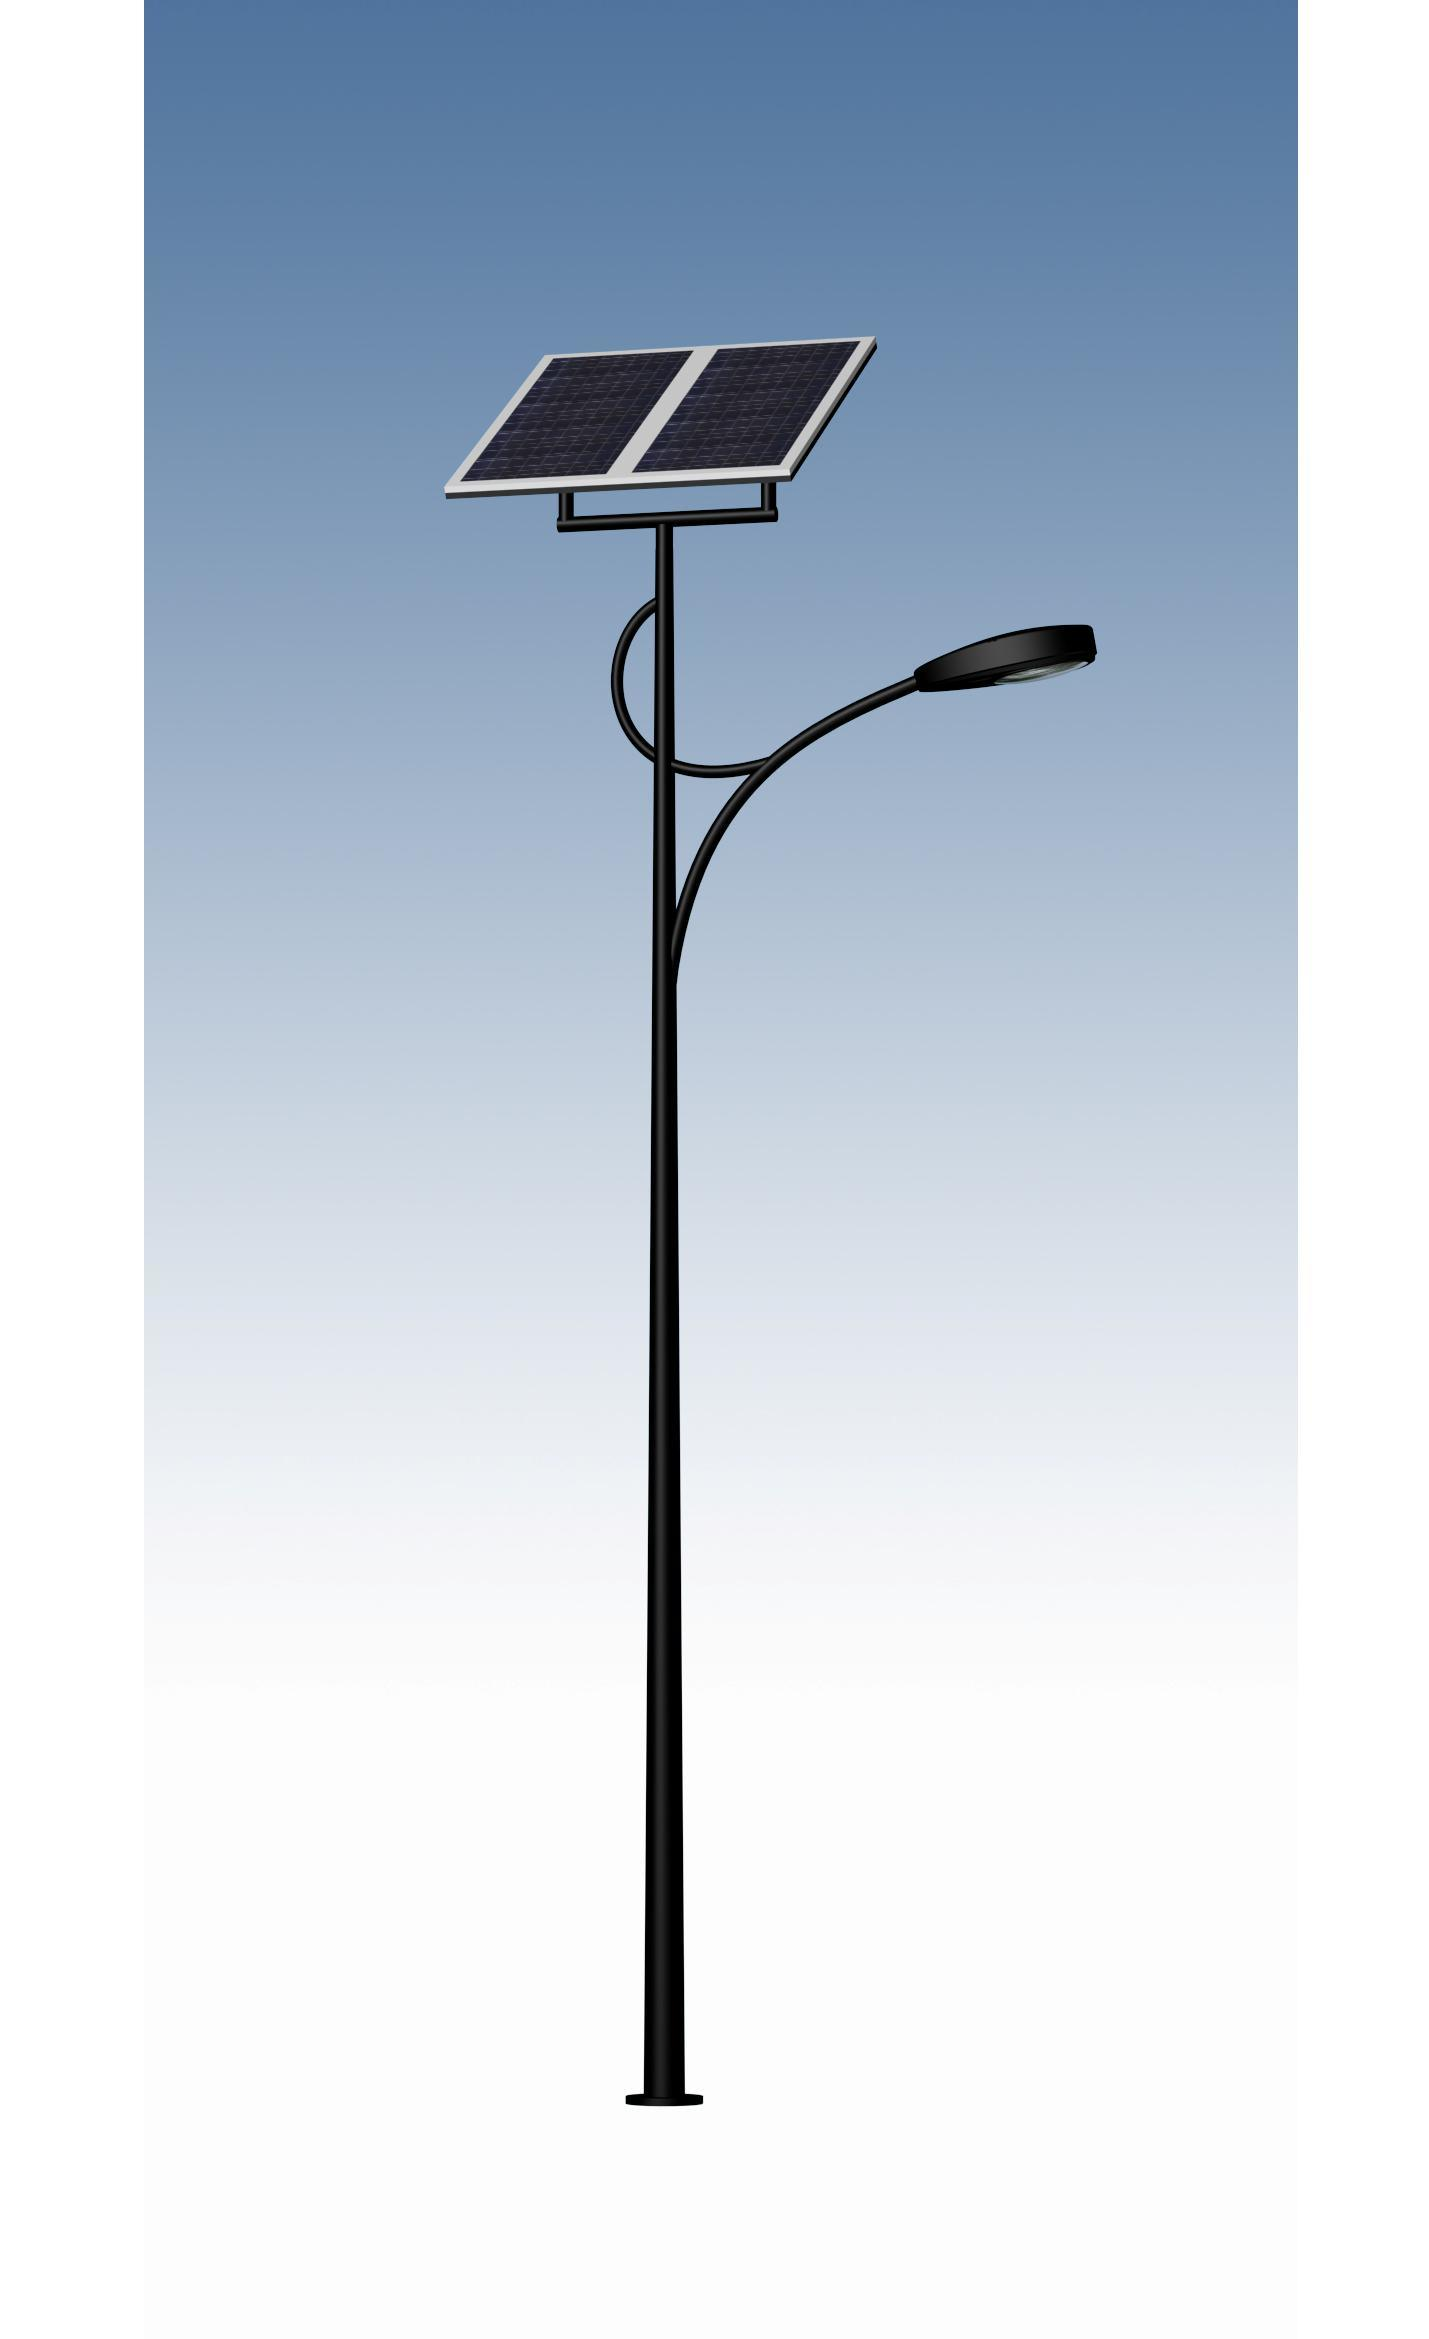 Solar Outdoor Lighting picture on China Solar Street Lights TS6203  with Solar Outdoor Lighting, Outdoor Lighting ideas 495cf49584a3537d41f8bc54350b97ba